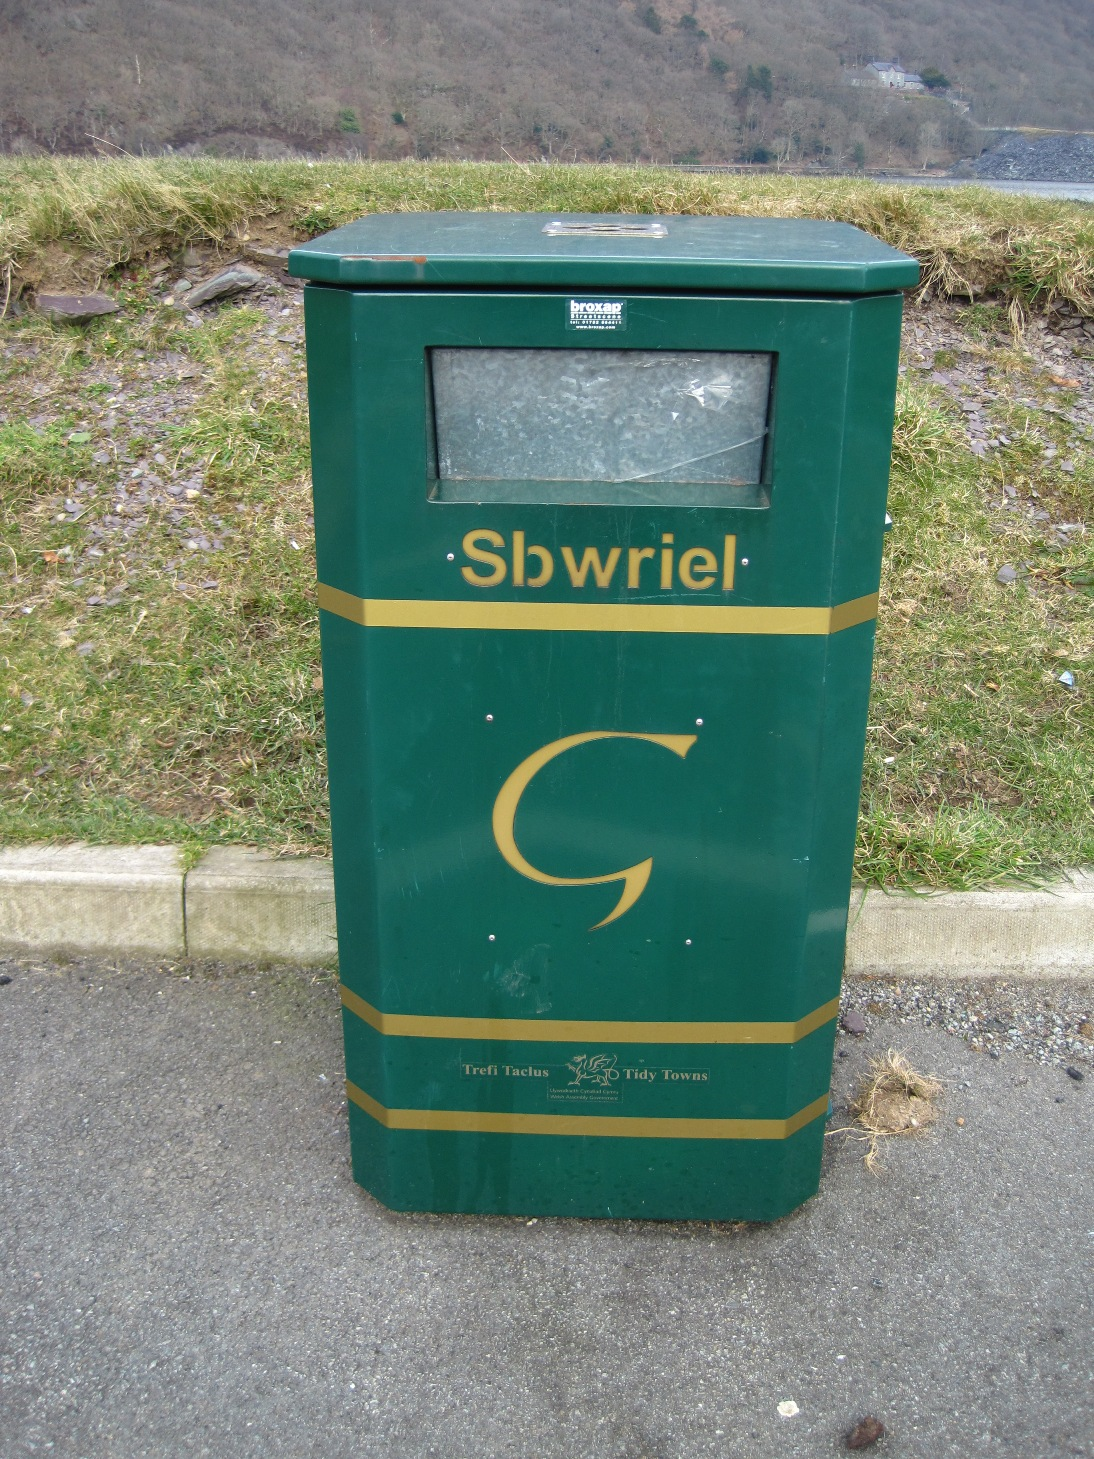 Welsh bins 28 Mar 2013 (2)